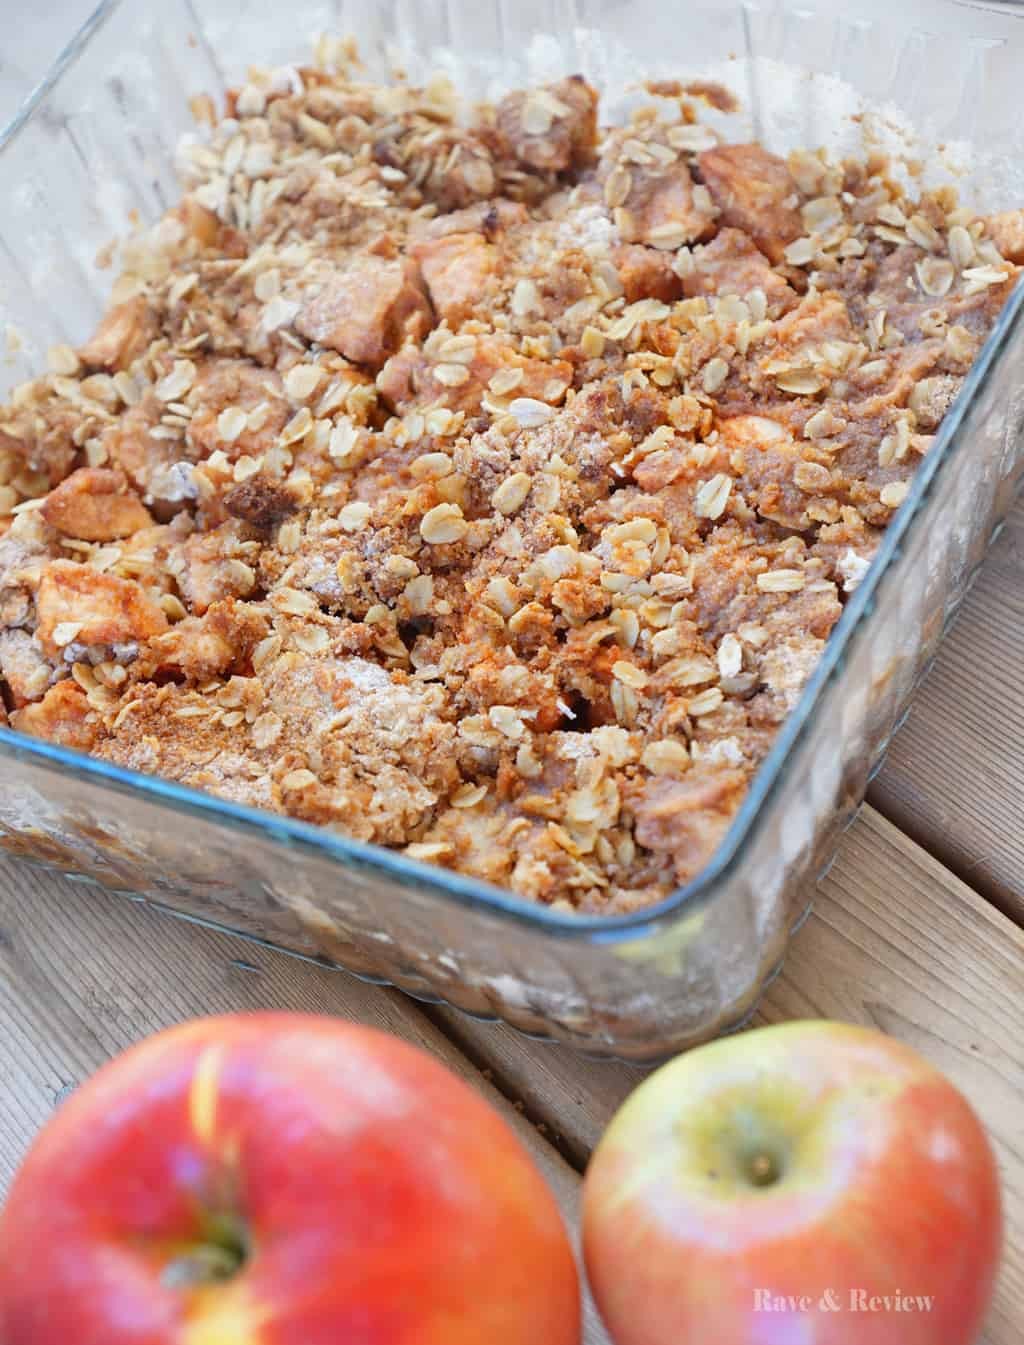 Apple Crisp with self rising flour baked